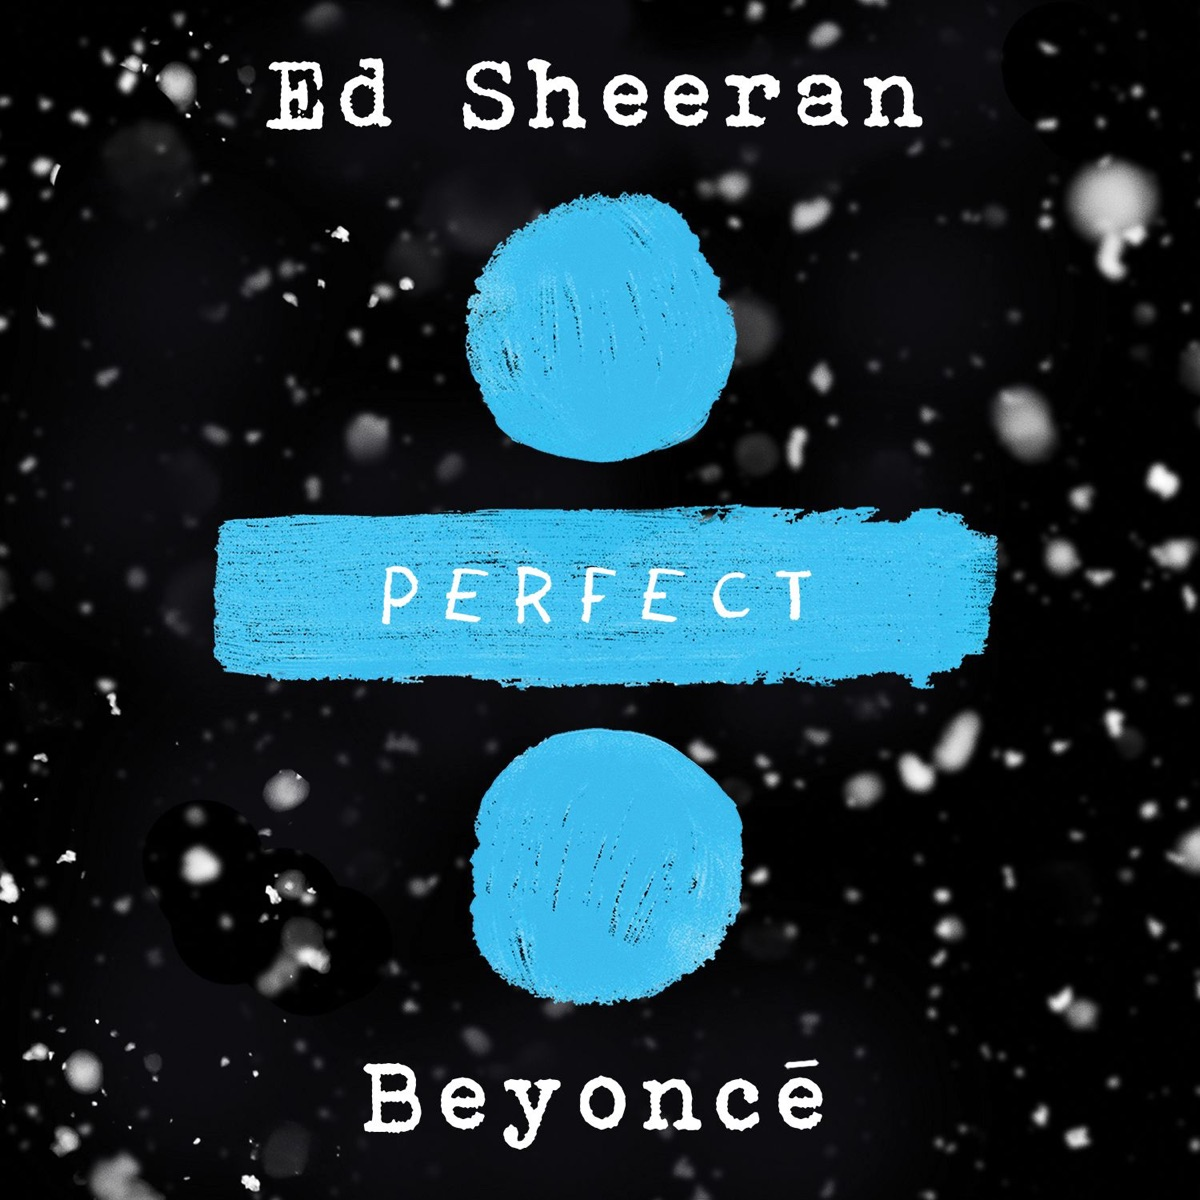 Perfect Duet with Beyoncé - Single Ed Sheeran CD cover